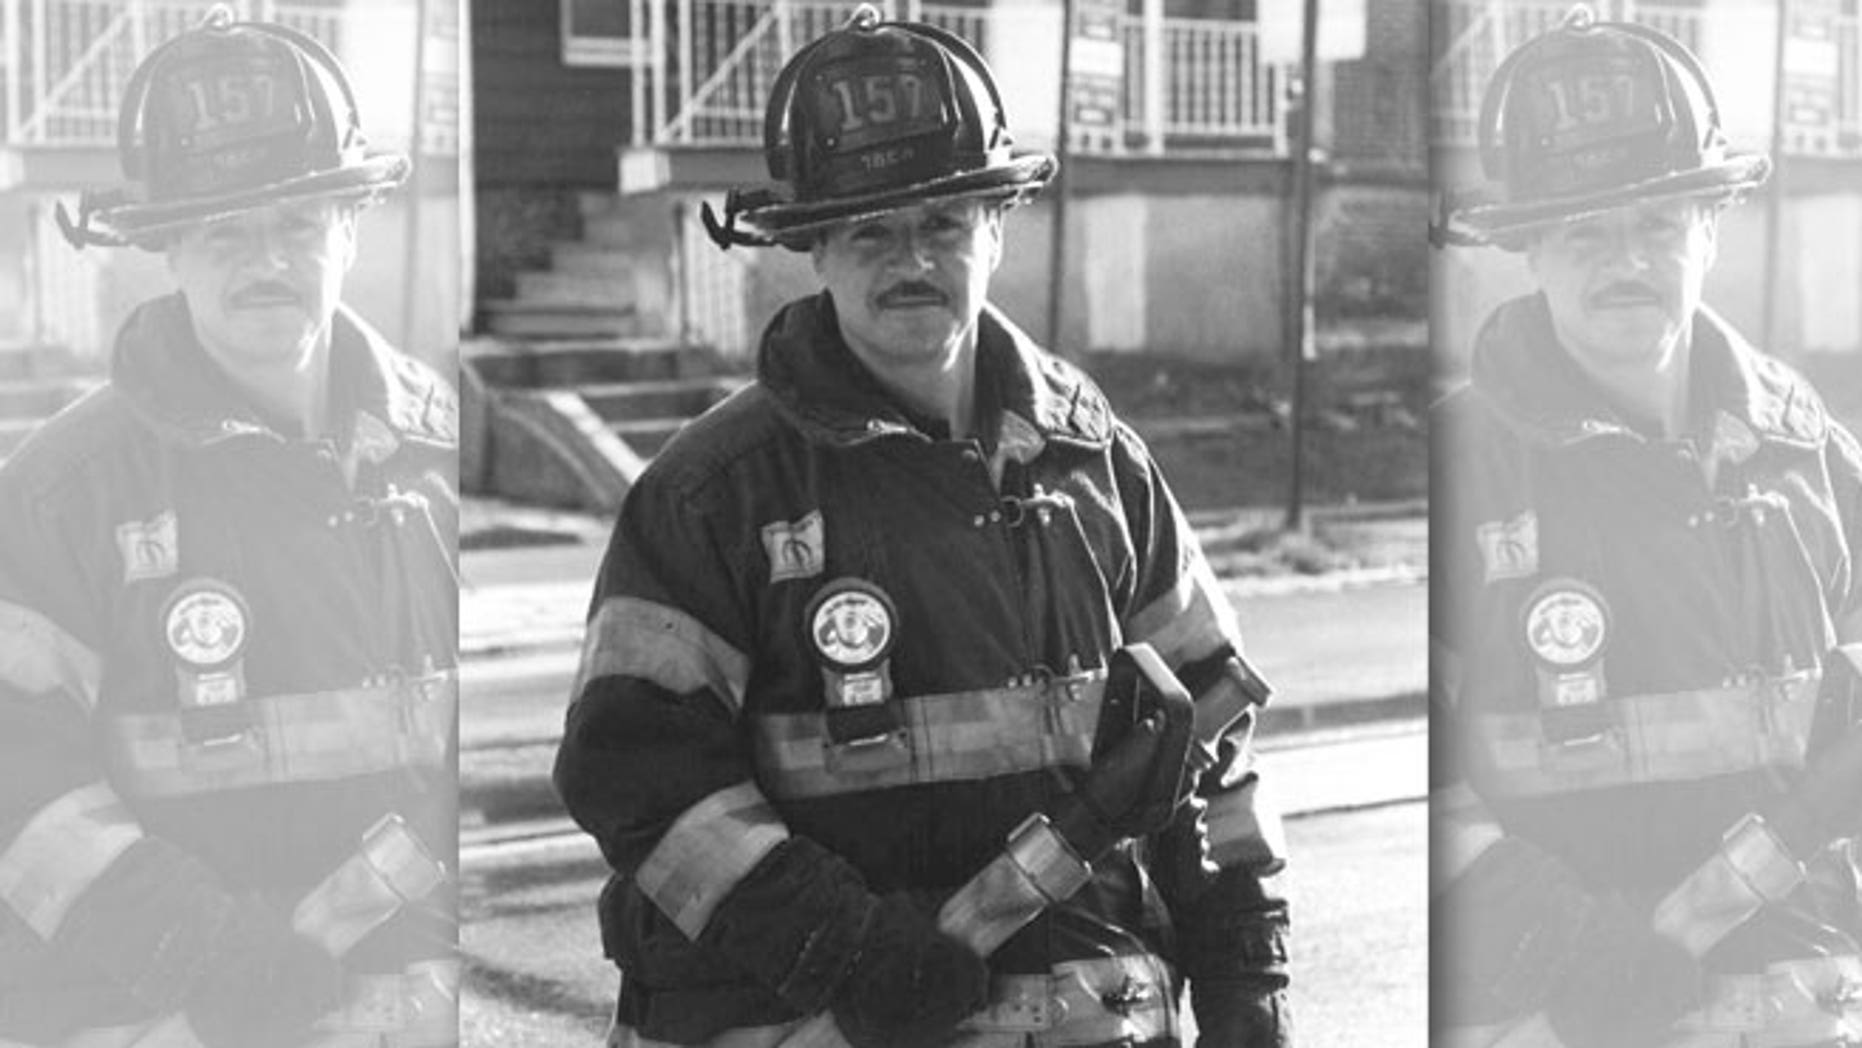 FDNY firefighter Jimmy Martinez, 54, was diagnosed with multiple myeloma in 2013. Now, the 9/11 first-responder is searching for a donor match for a much-needed bone marrow transplant. COURTESY: Martinez Family